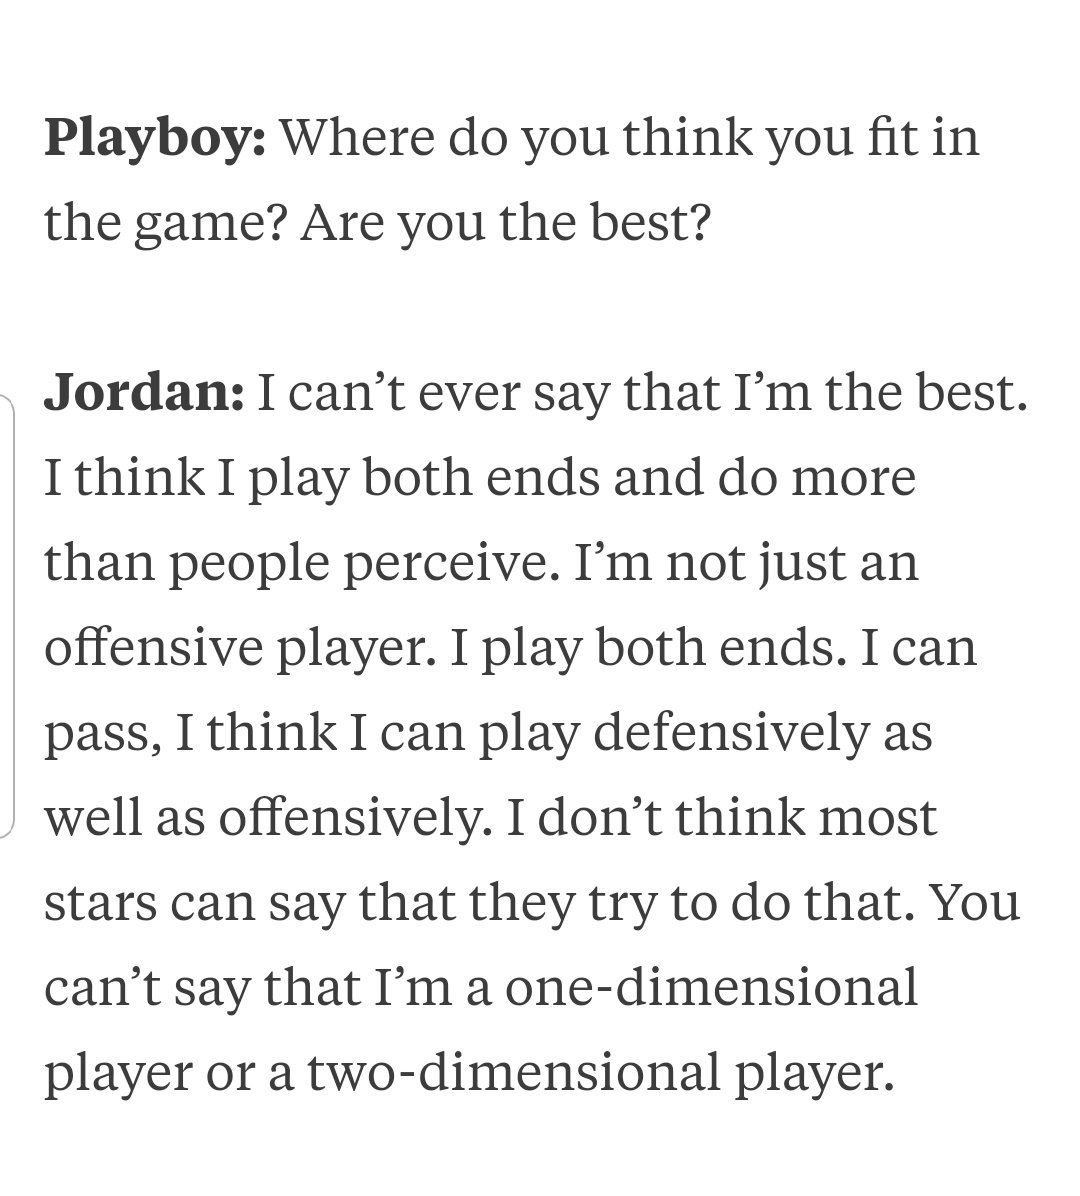 In this interview with Playboy in May of 1992, Michael Jordan was asked if he was the best.  Even back then he demonstrated his reluctance and humility to declare his greatness.